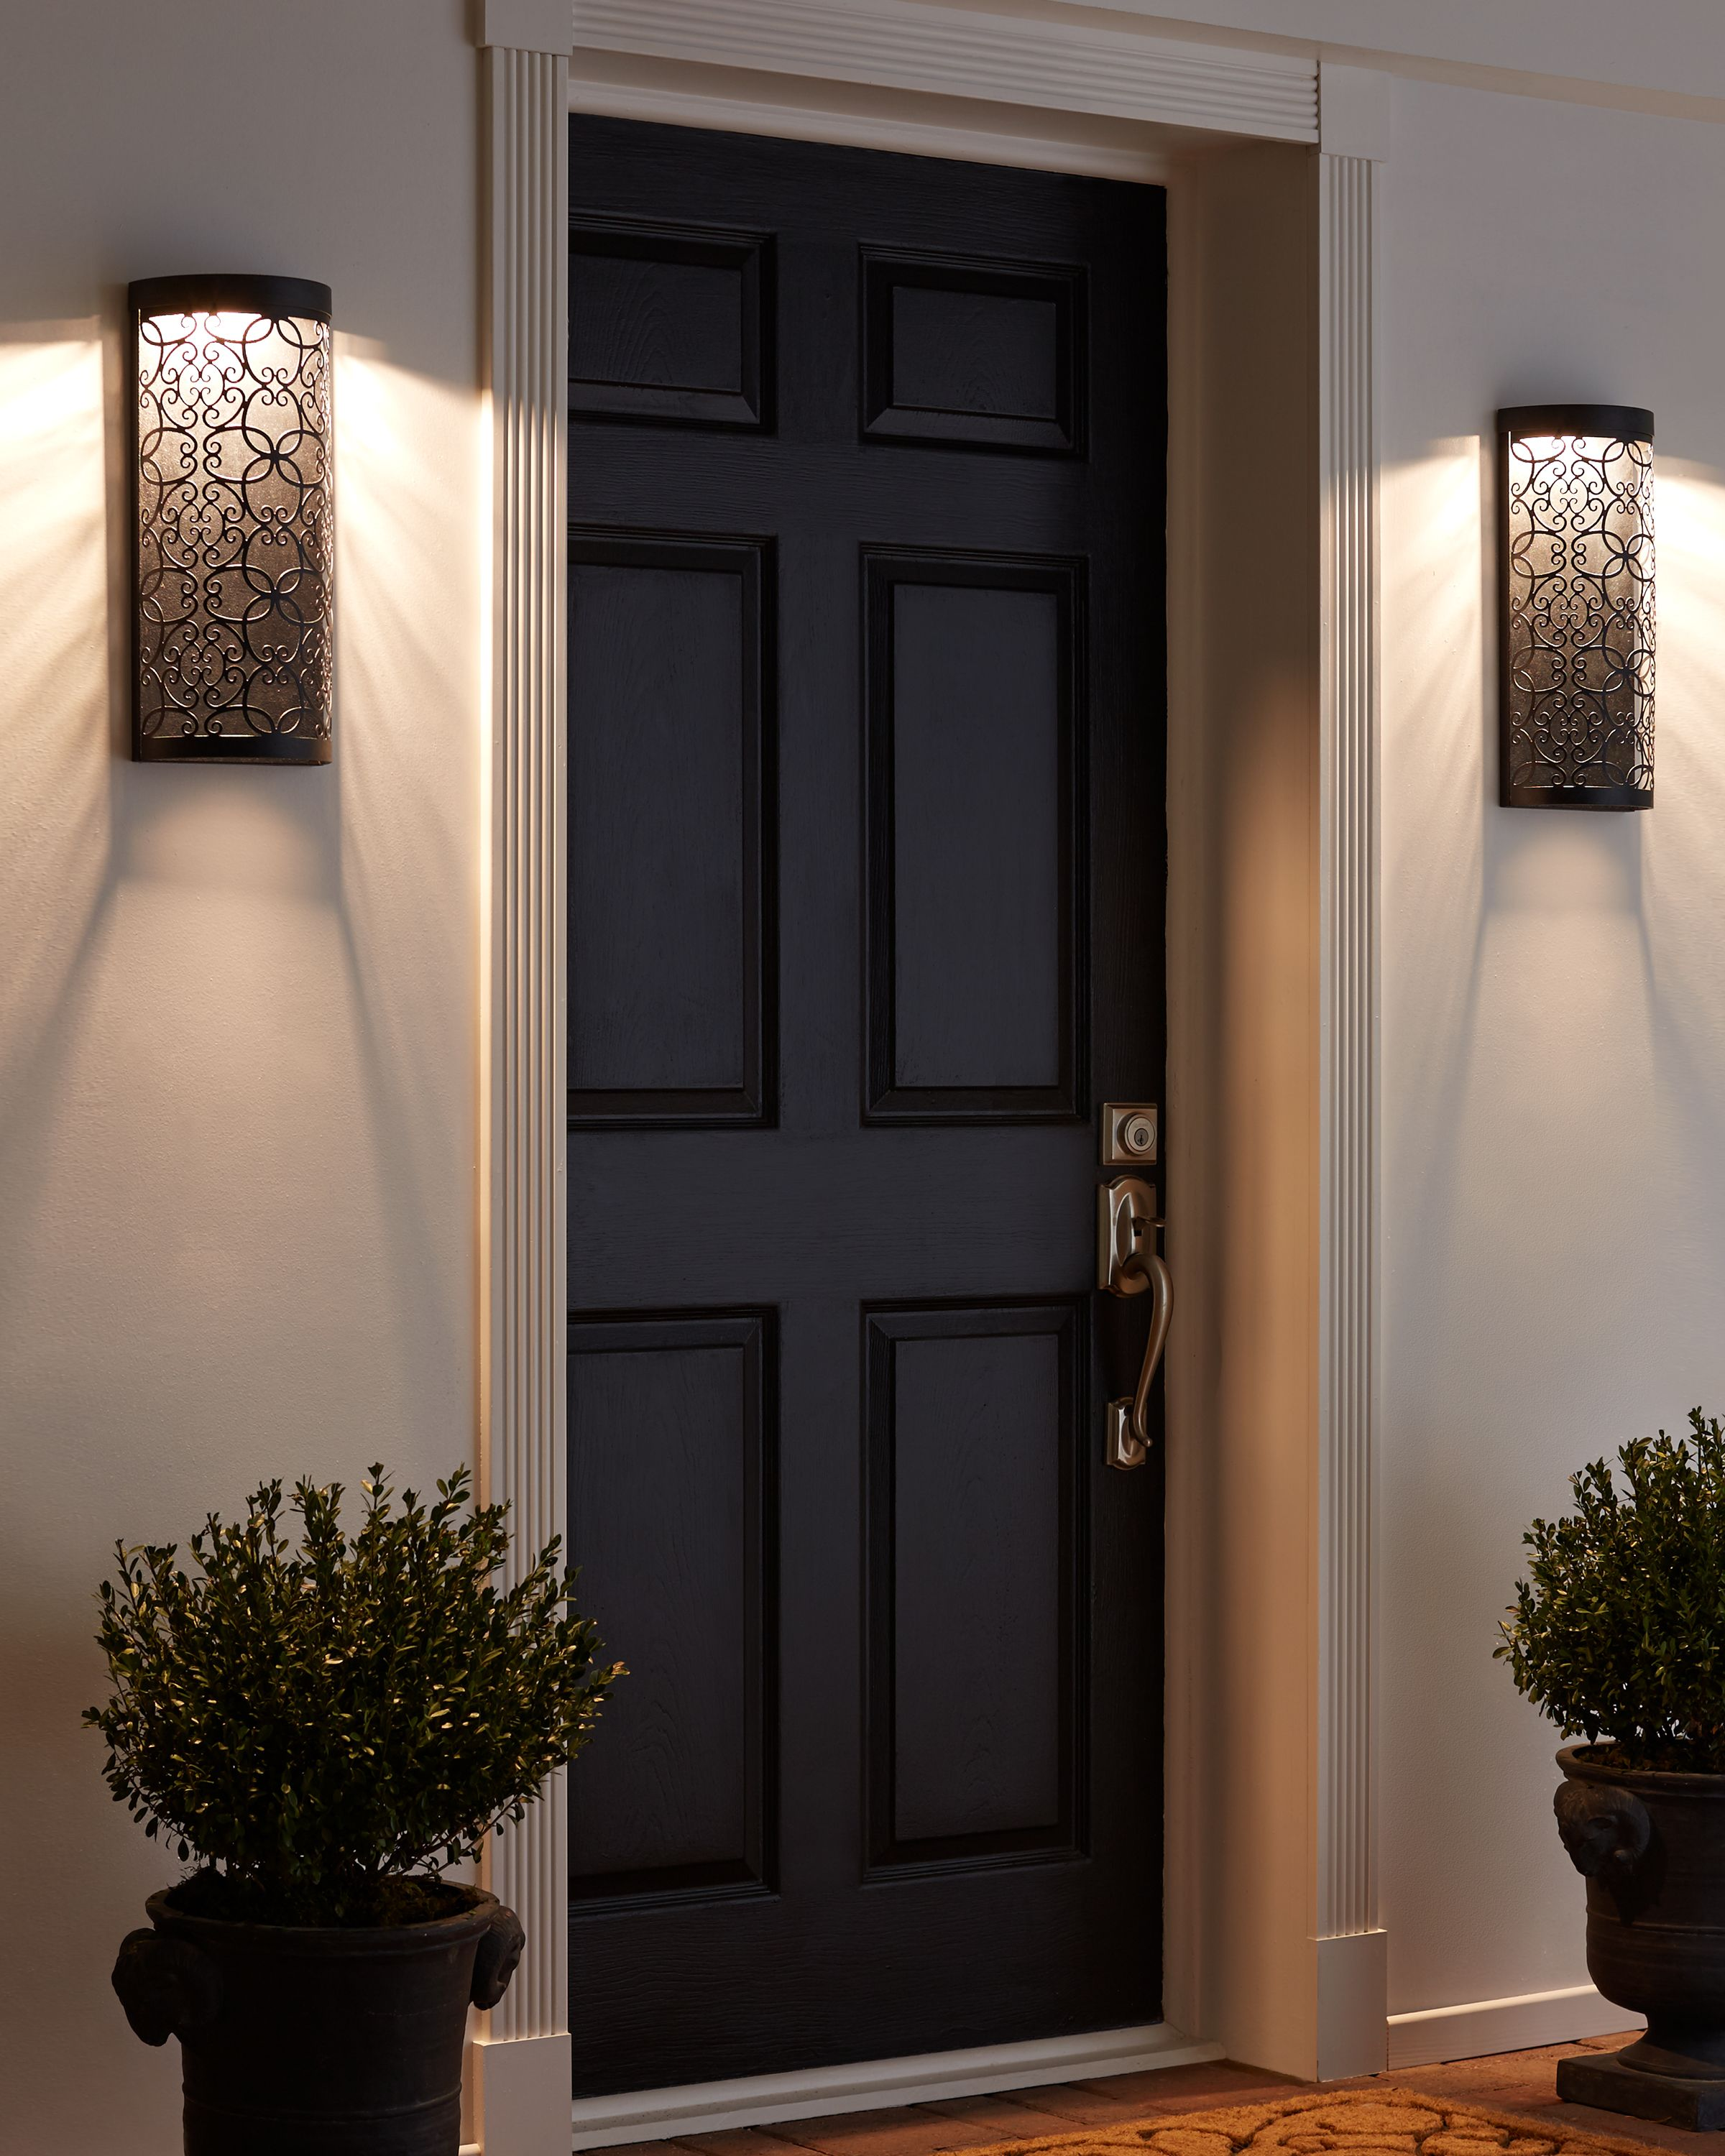 wall sconce lighting bedroom fresh security g exterior sconces fixtures light ideas outdoor gallery at modern catchy